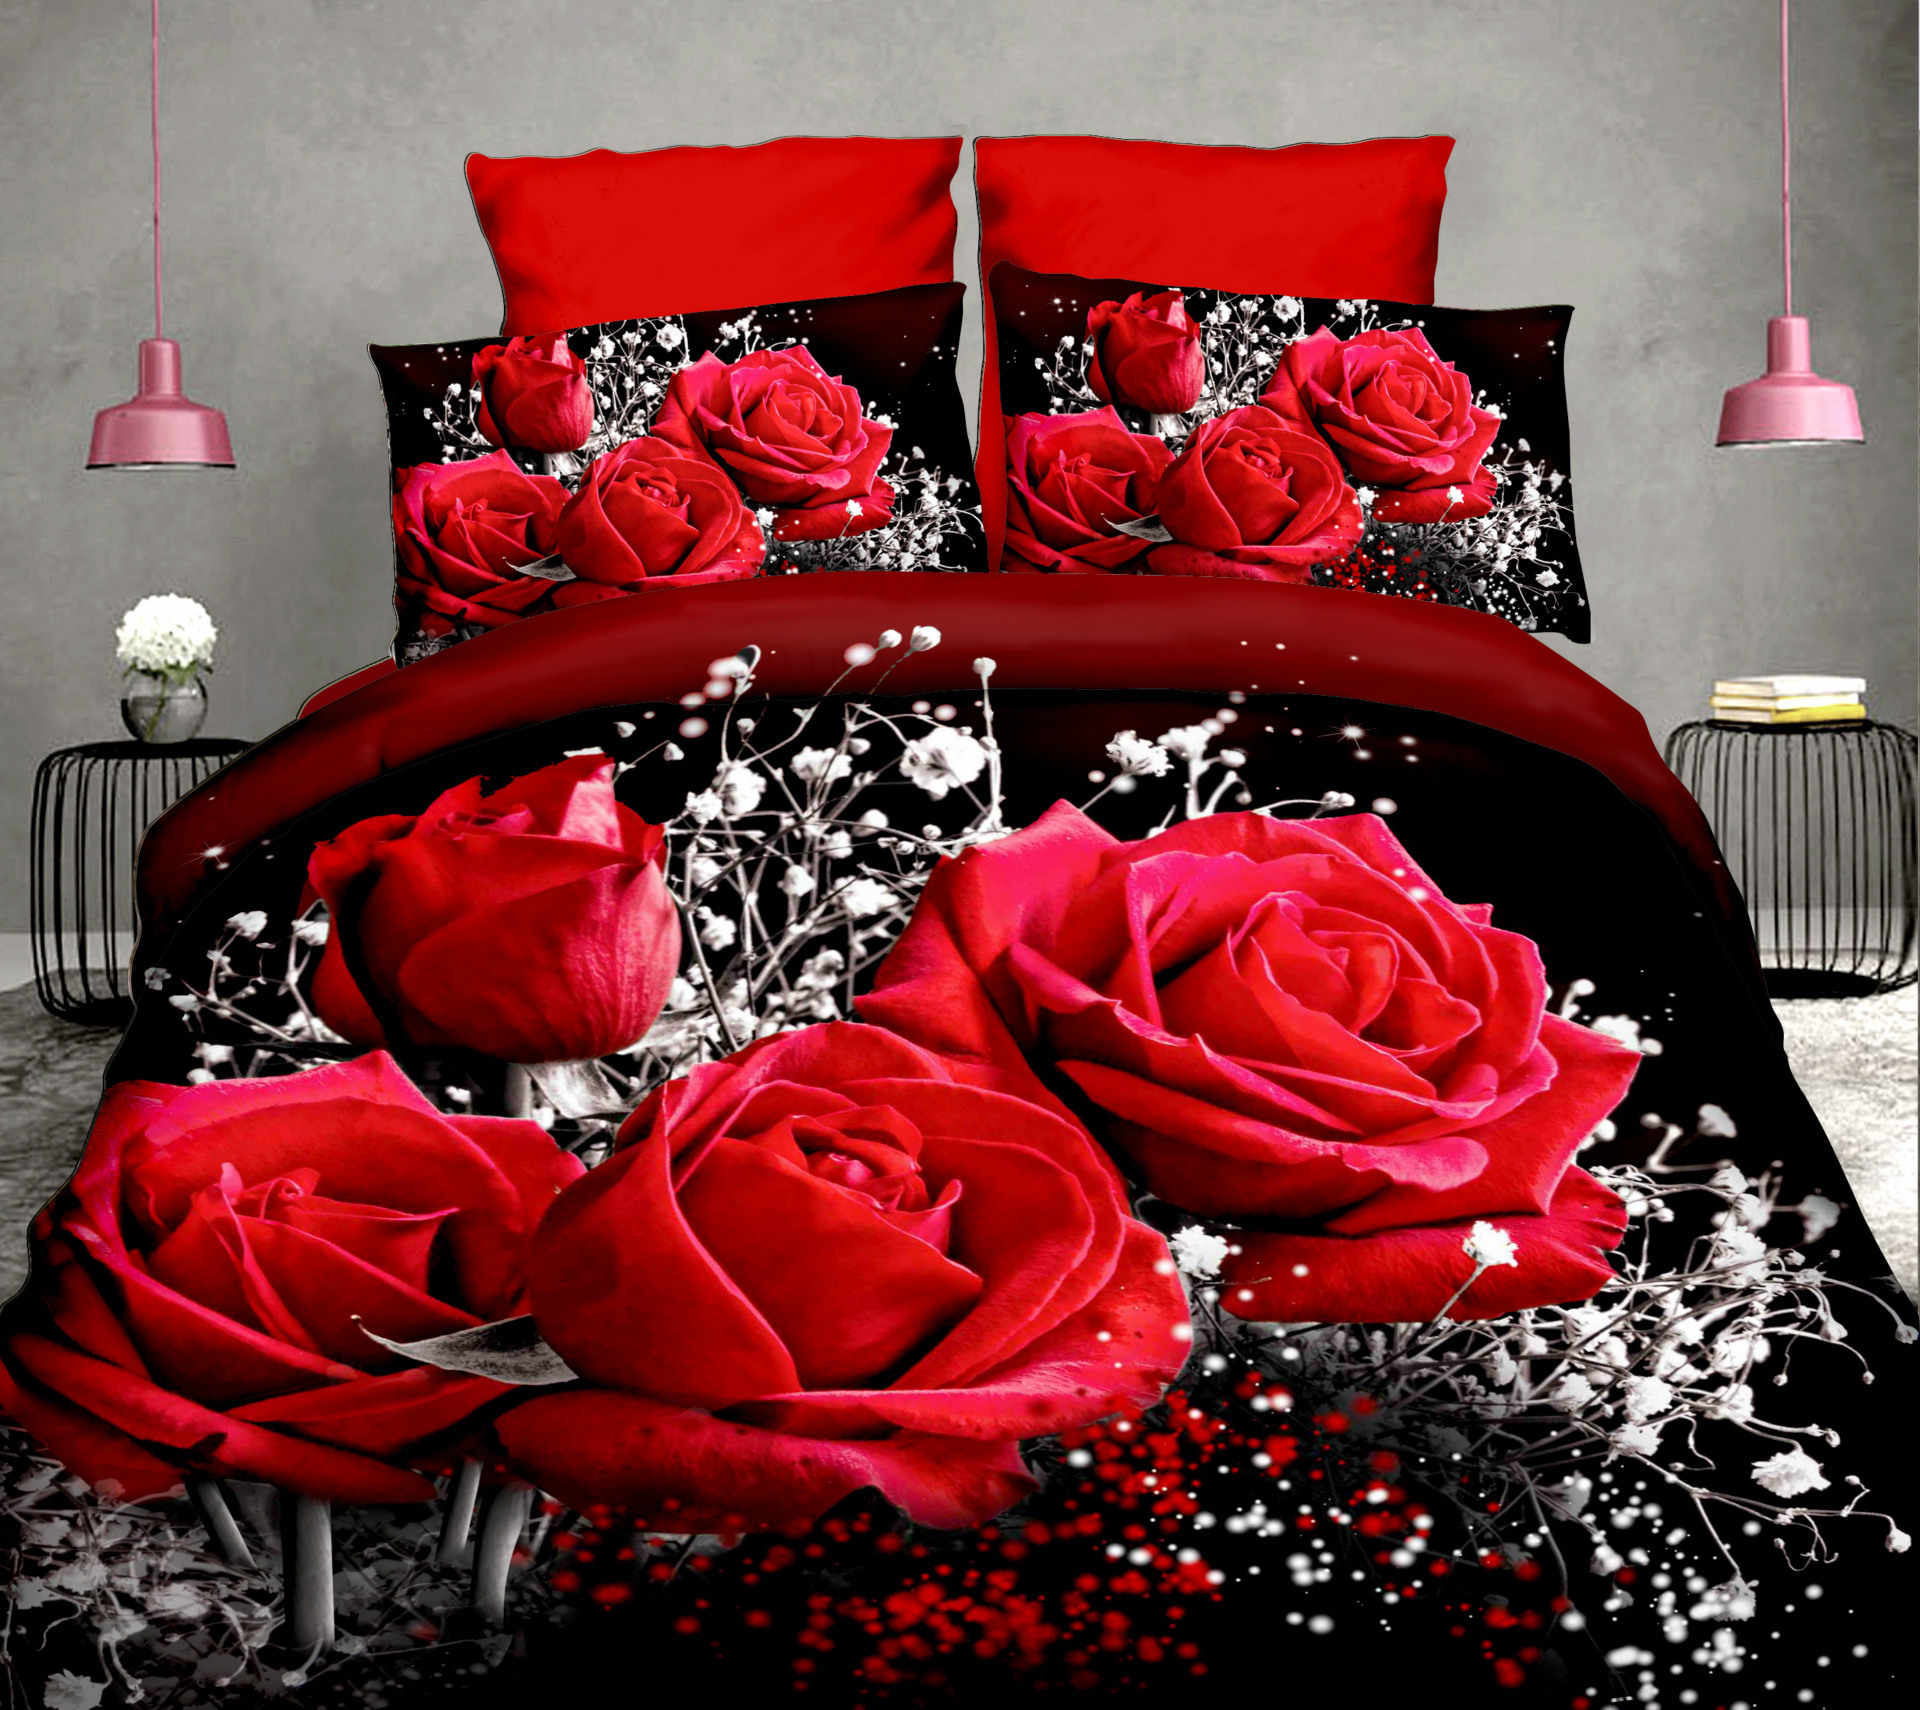 4pcs Cotton 3D Rose Bedding Sets High Quality Soft Duvet Cover Bedsheet Pillowcase Reactive Printed Bedclothes Queen Bed Linen30